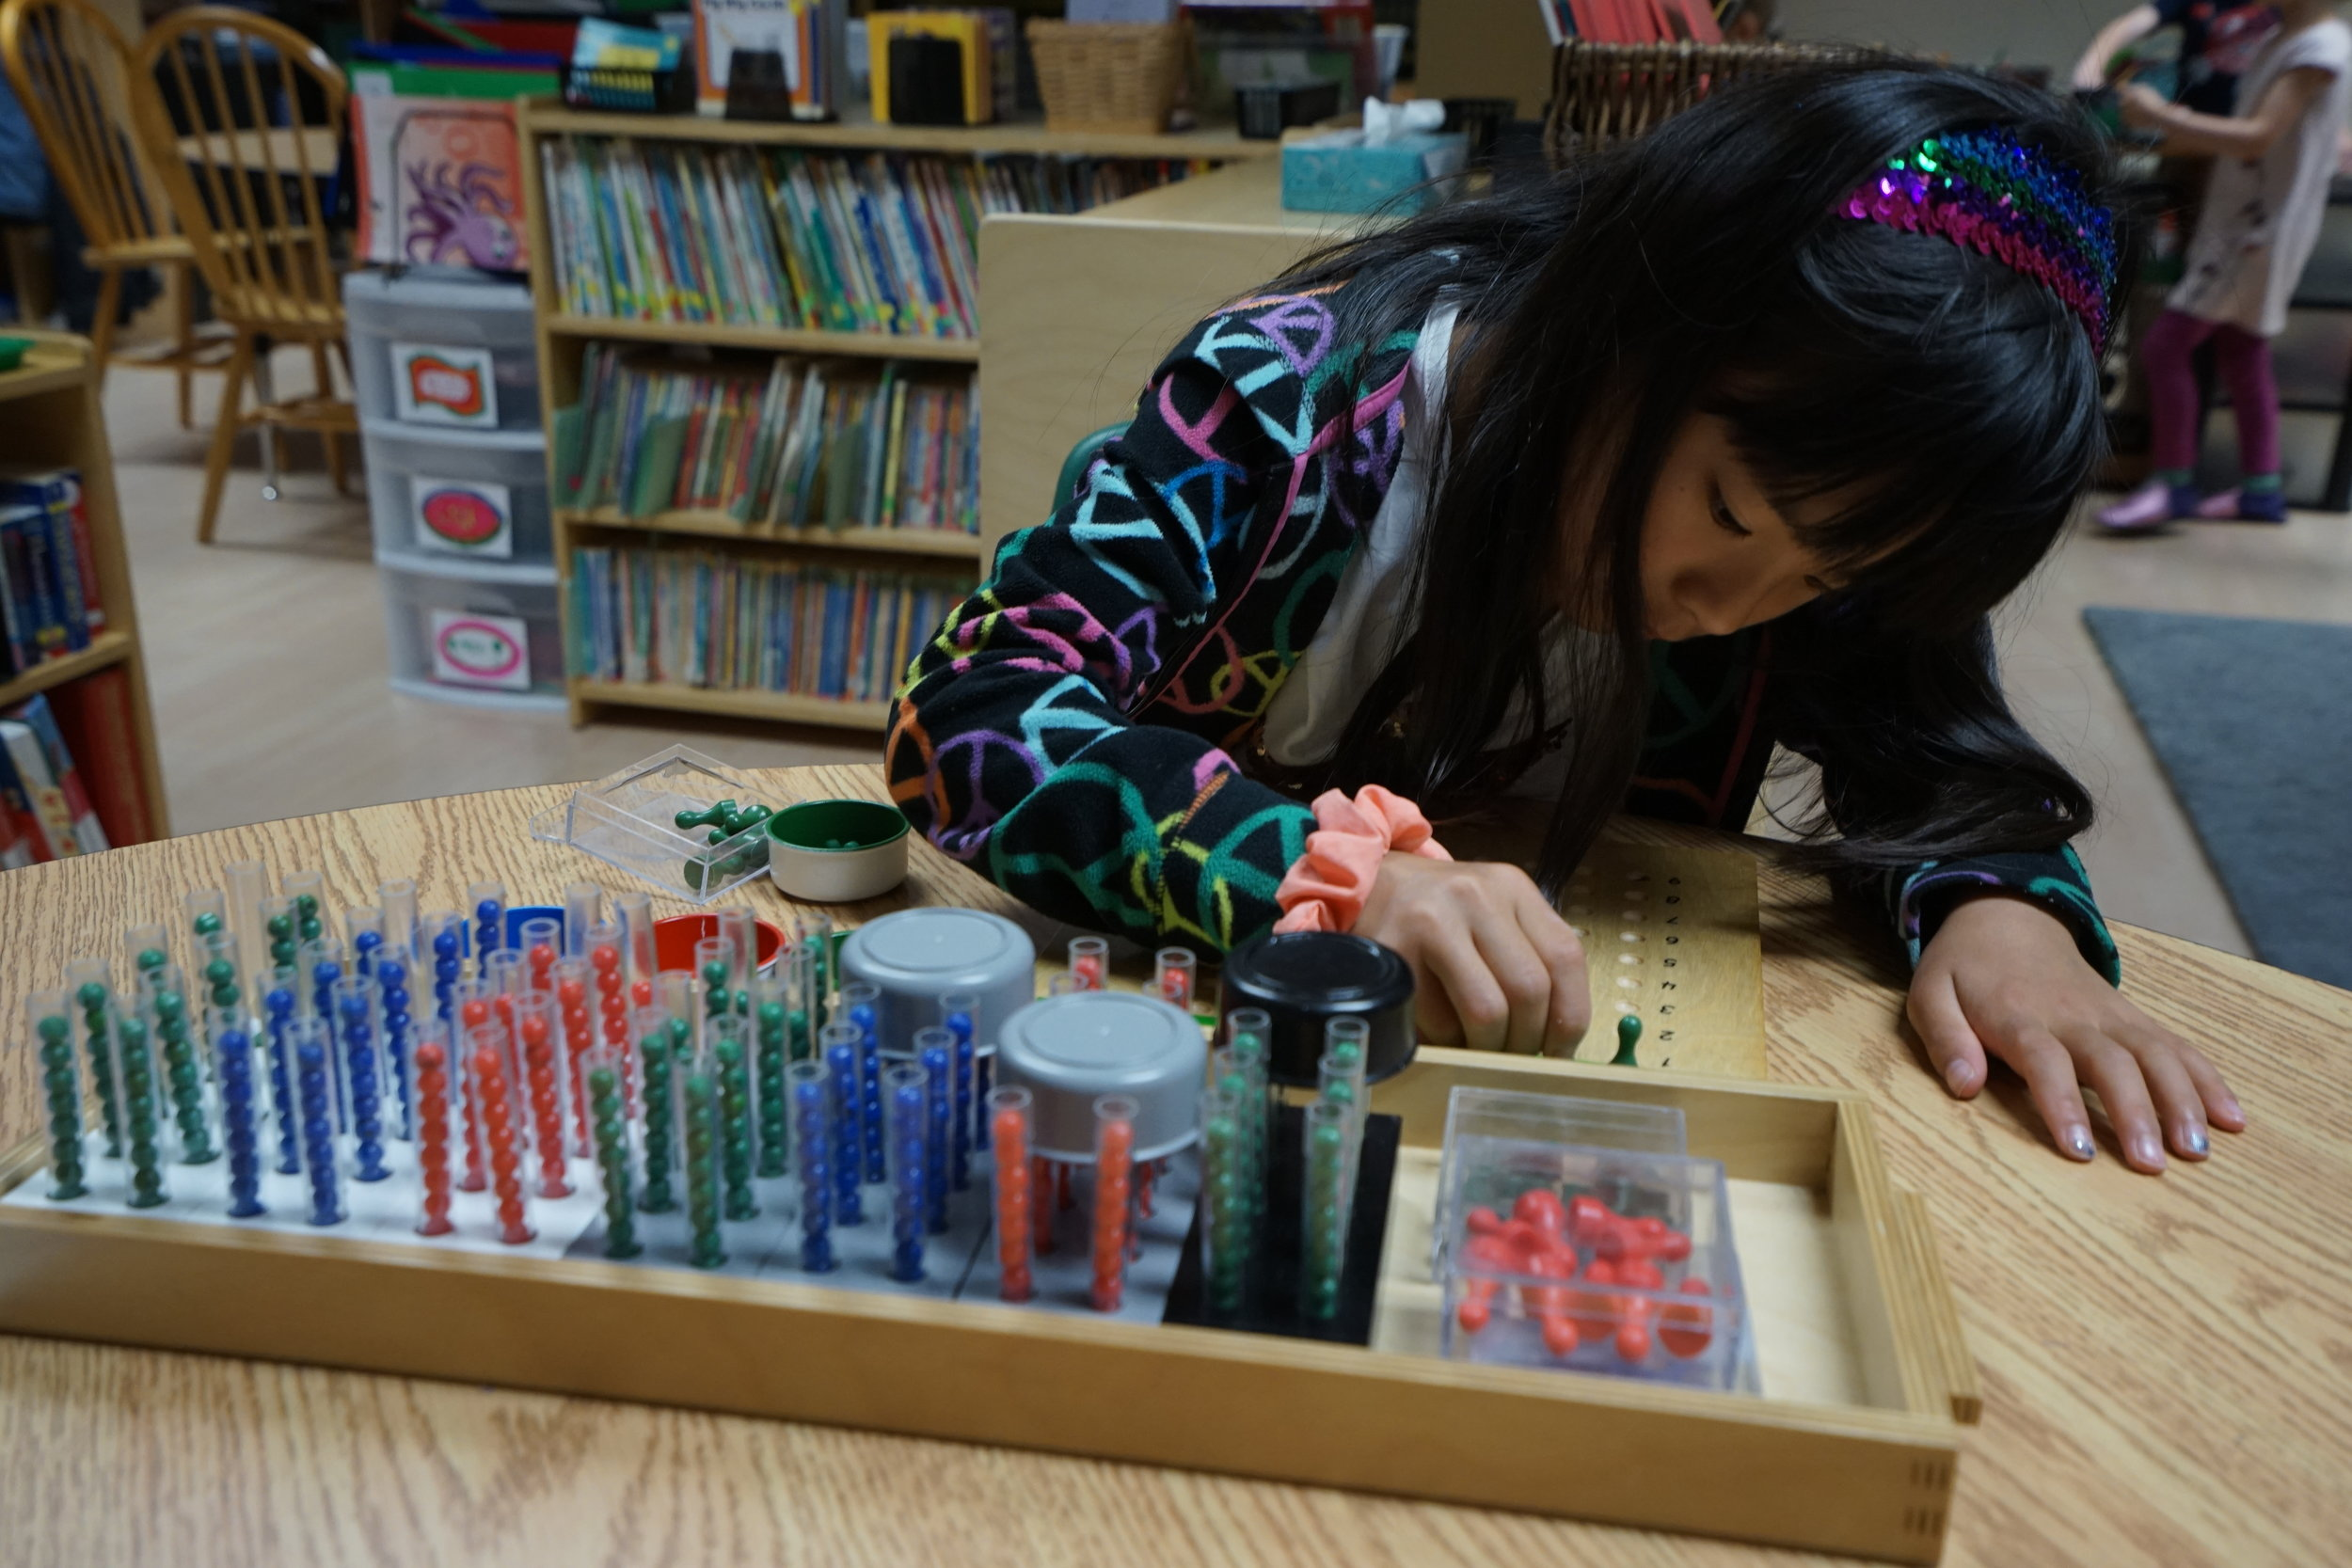 A third year elementary student works with the Division Test Tubes, a traditional Montessori math tool.